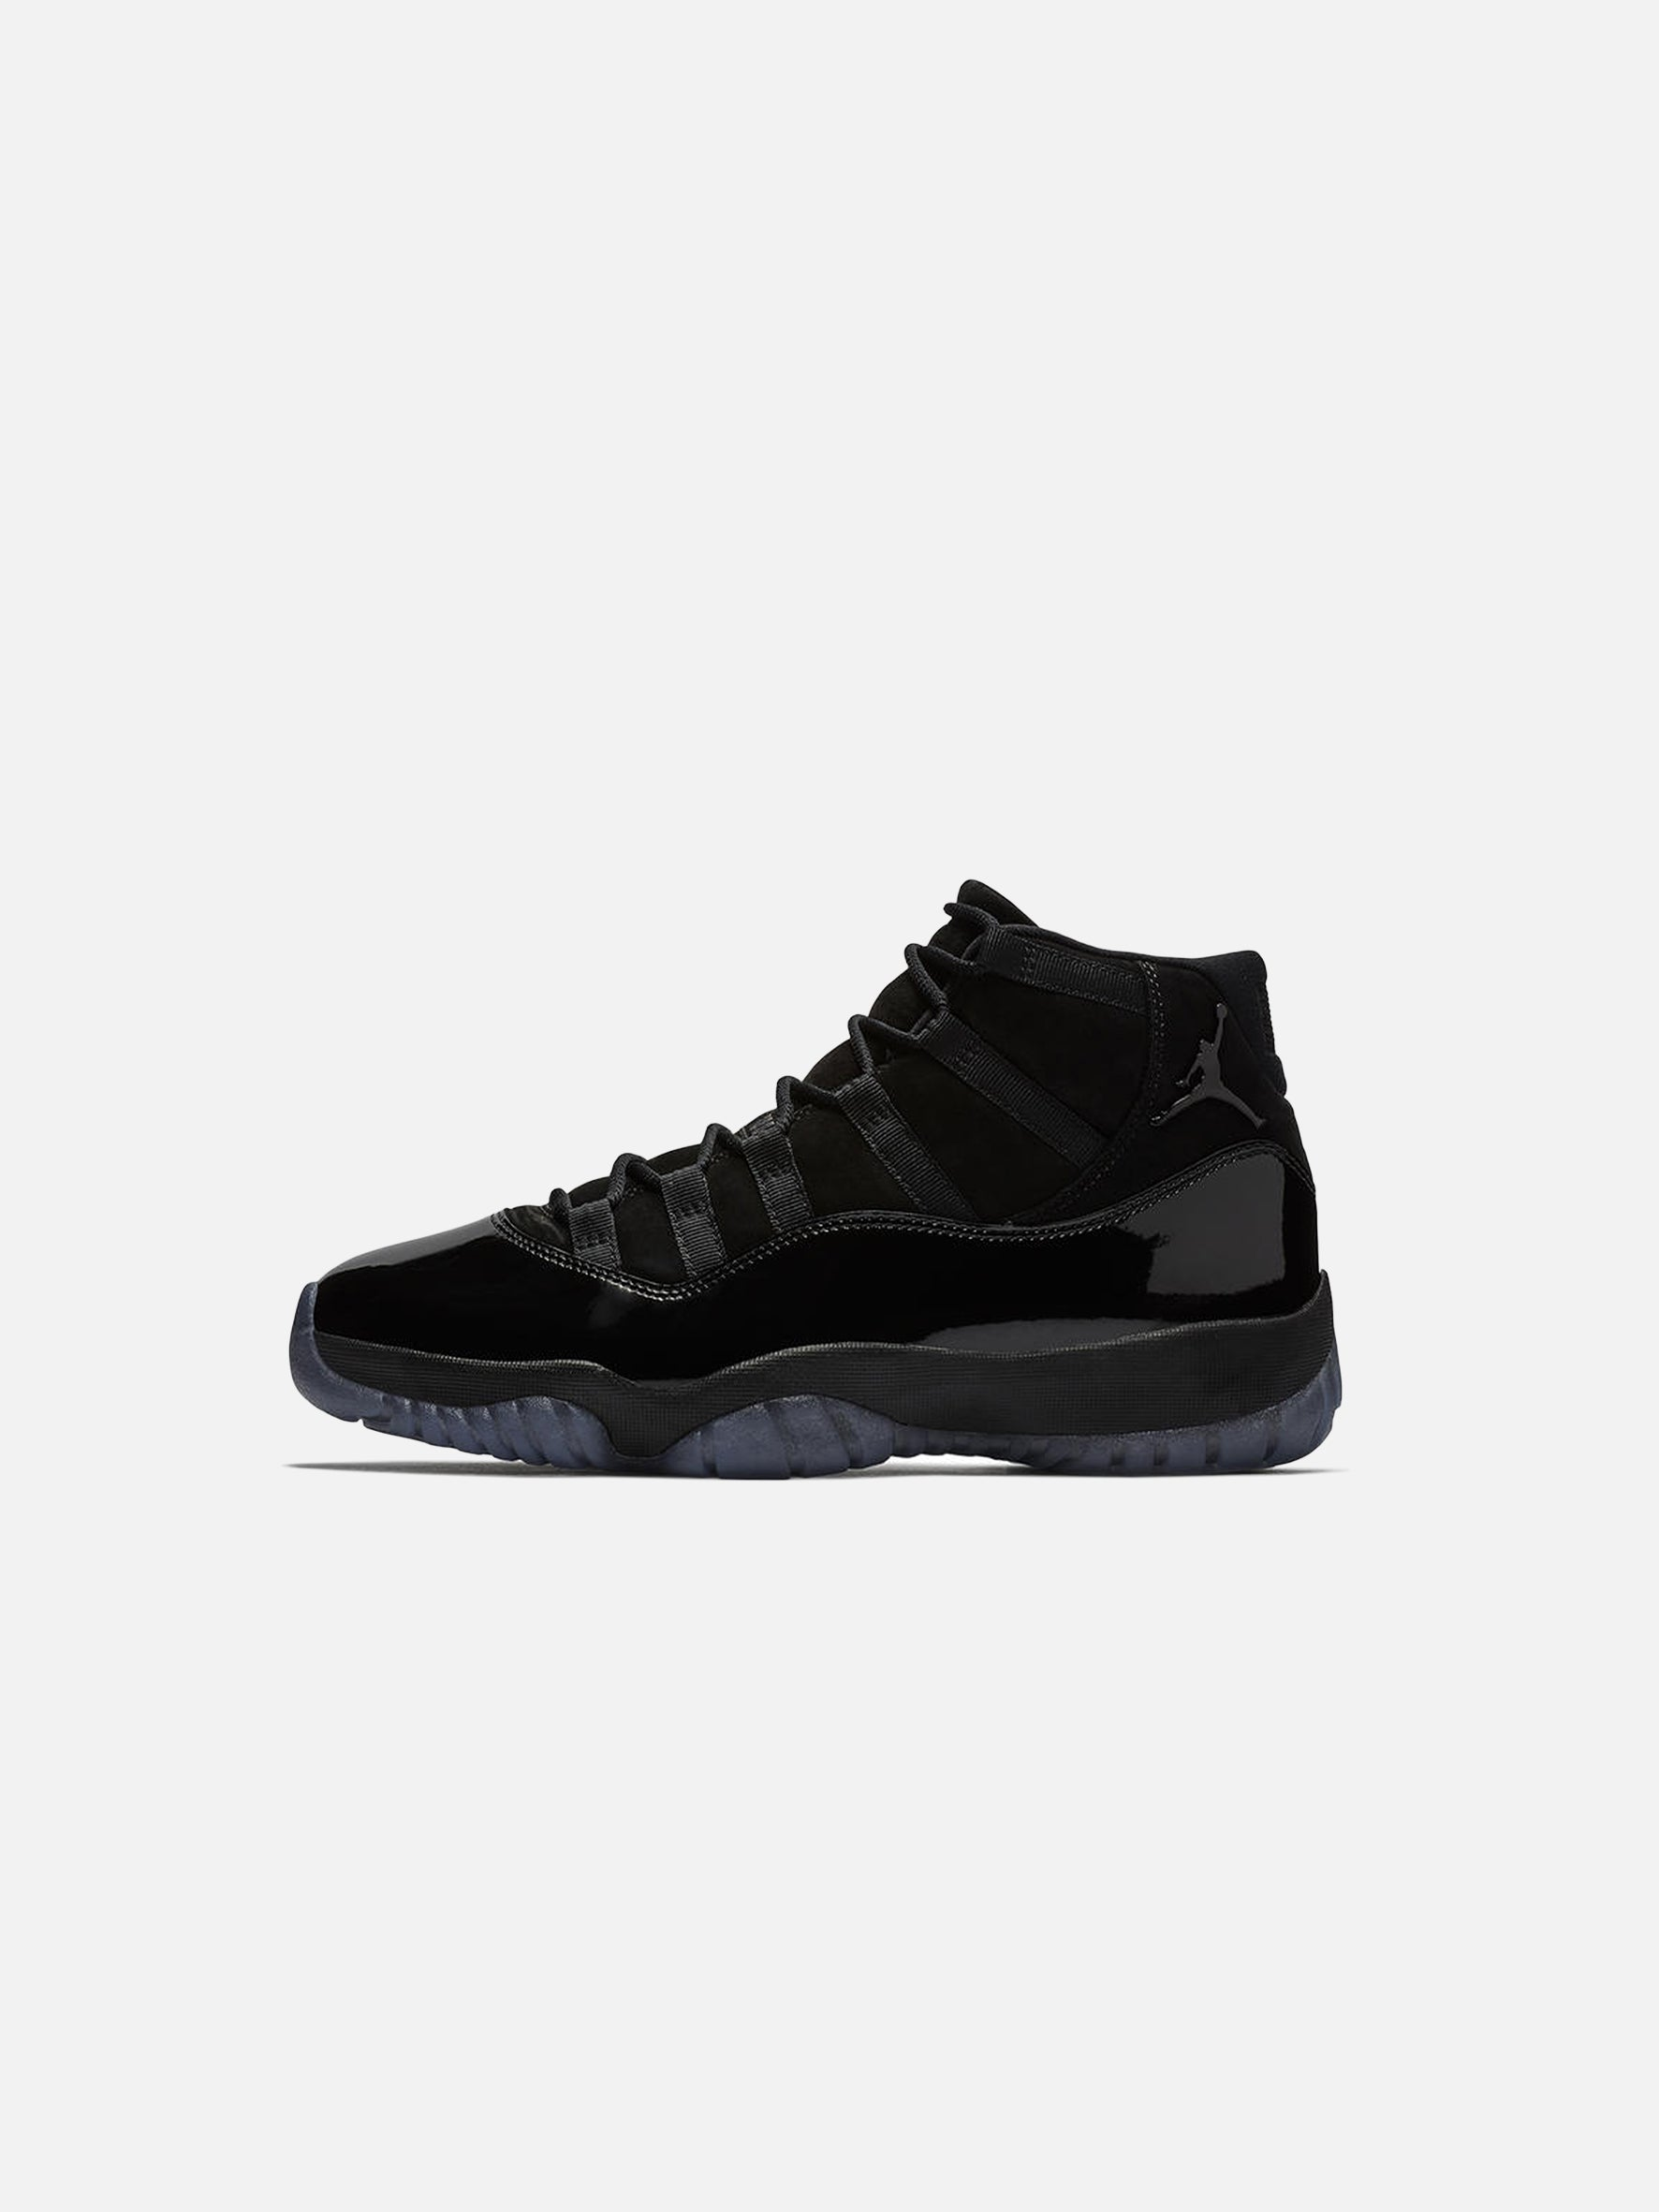 Nike Air Jordan XI Cap & Gown